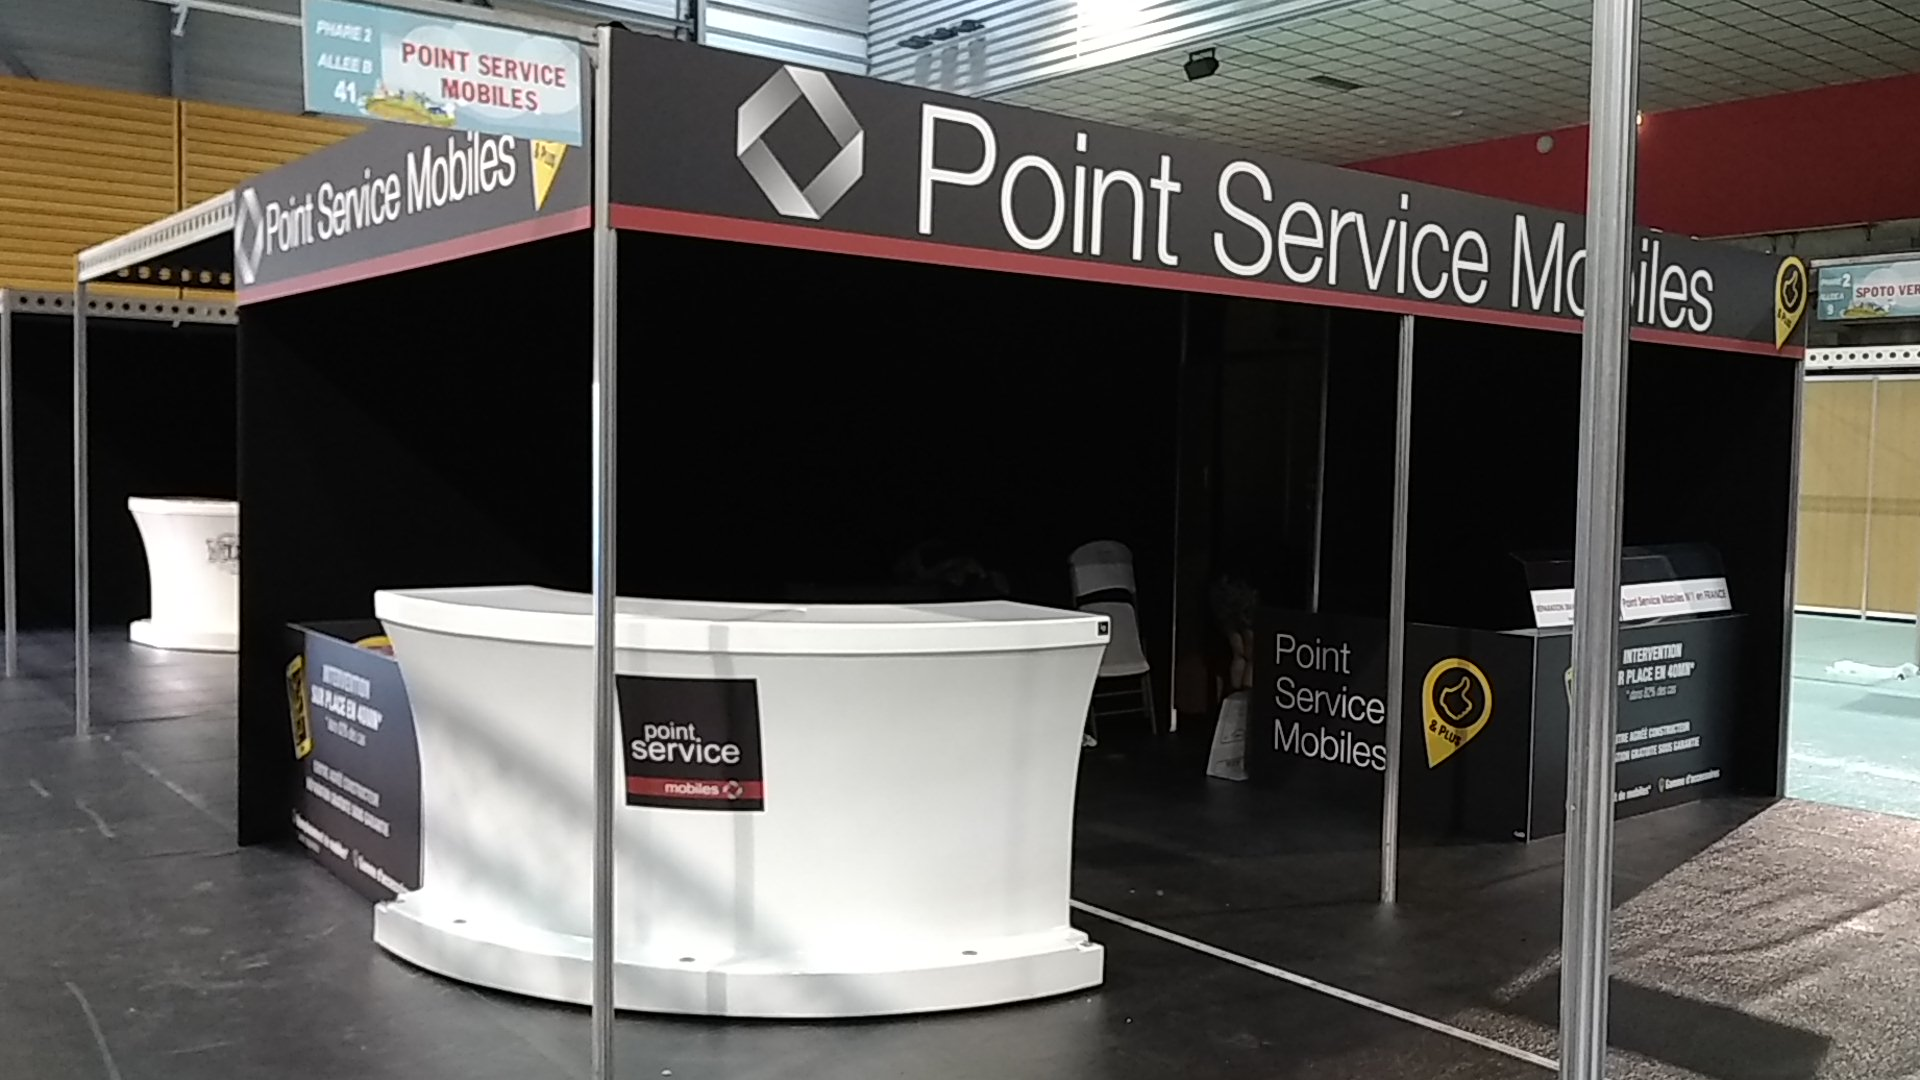 HABILLAGE STAND - POINT SERVICE MOBILE - CHAMBÉRY - SAVOIE PUB